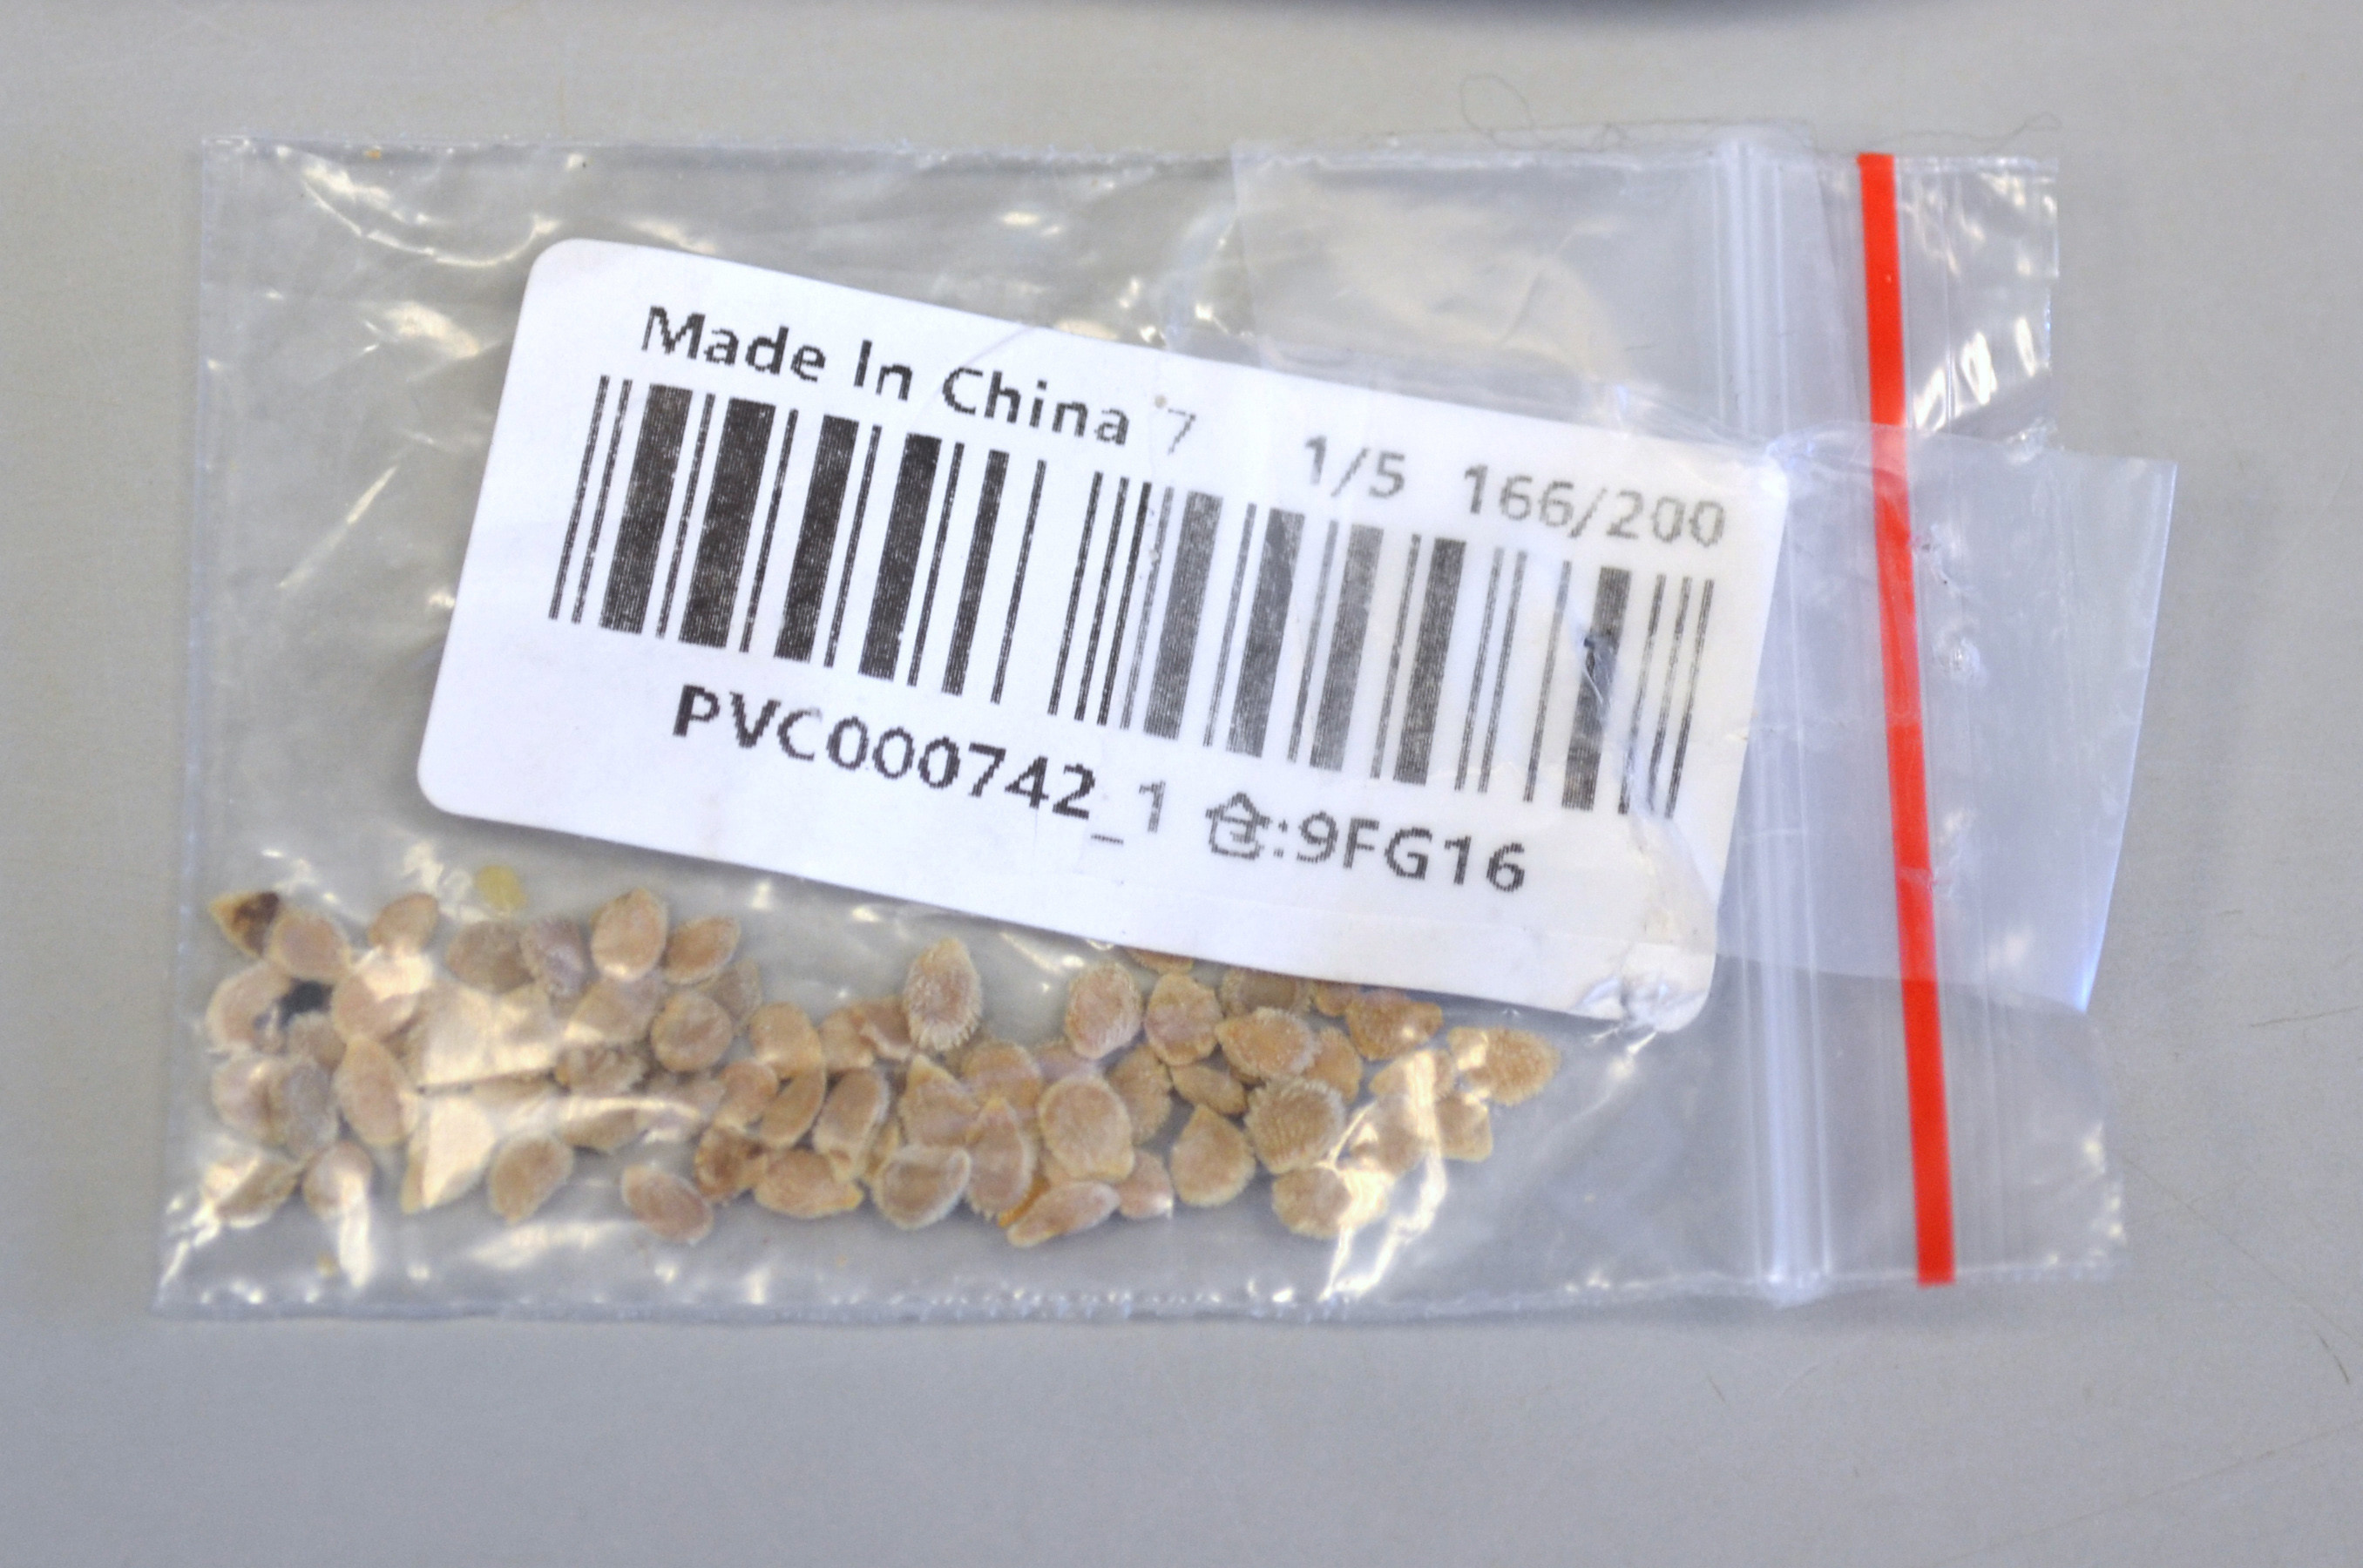 This man planted mysterious seeds from China he never ordered – here's what grew